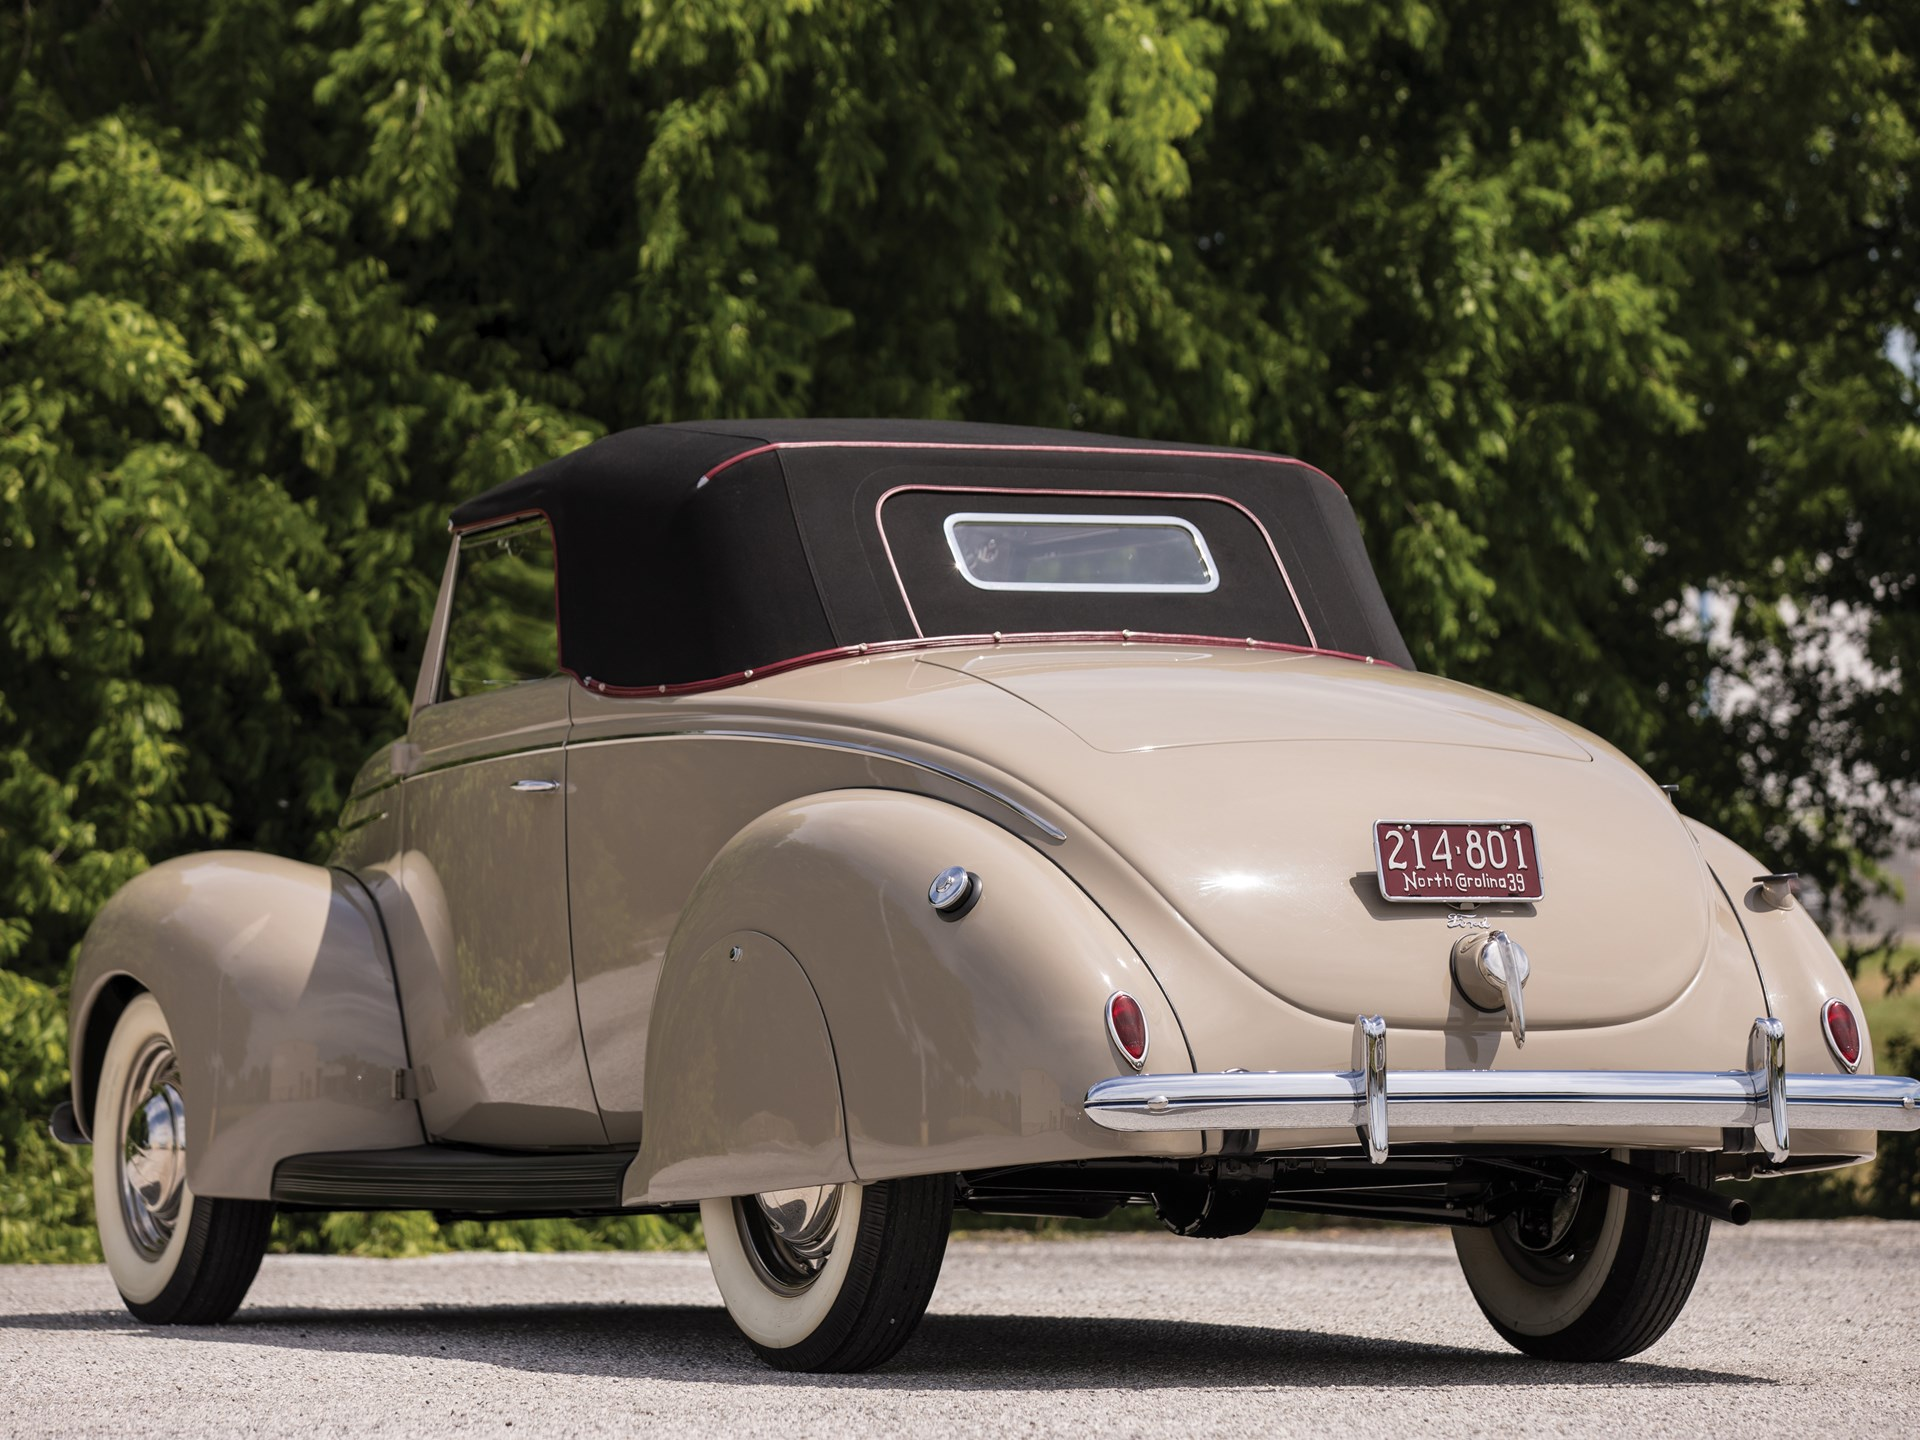 1939 Ford V-8 DeLuxe Convertible Coupe